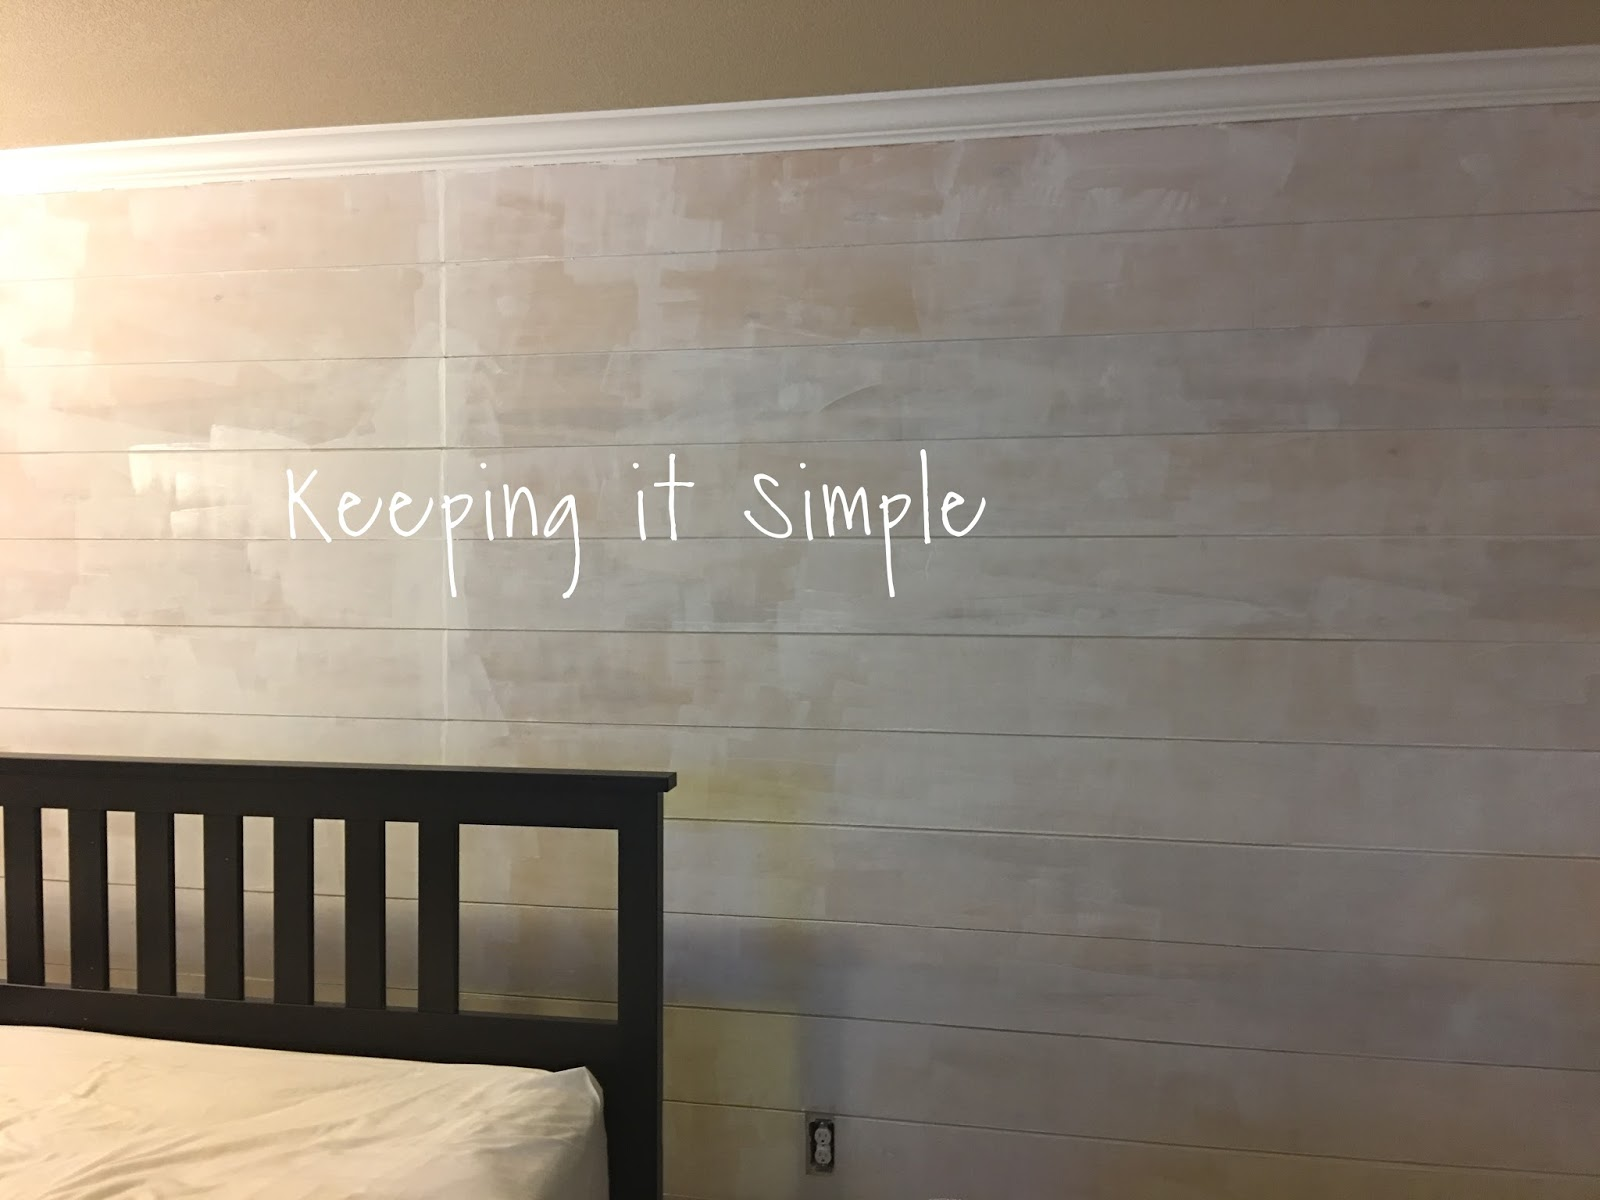 Master Bedroom Up Or Down keeping it simple: how to build a shiplap in a master bedroom for $100